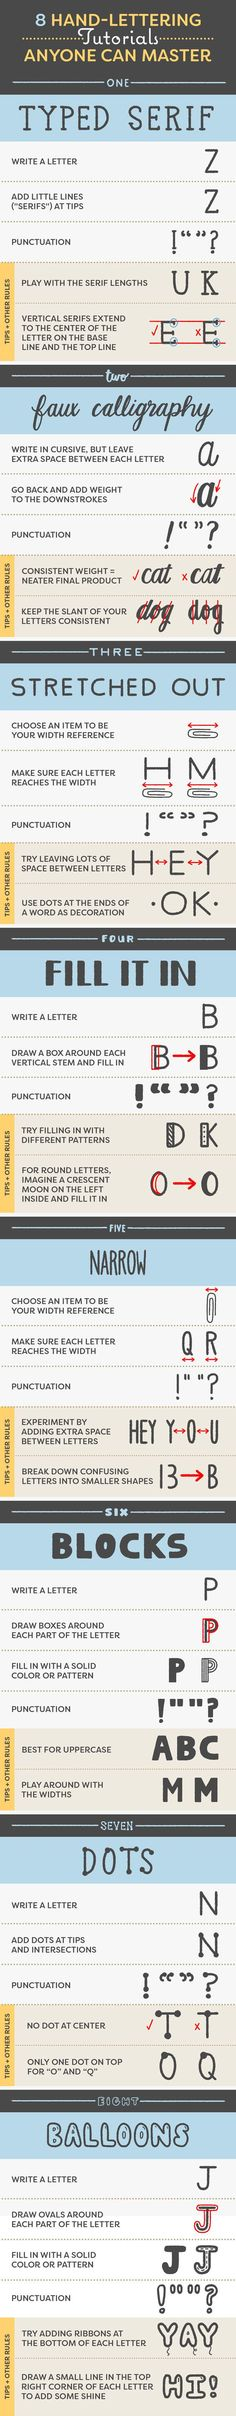 8 Easy Hand-Lettering Tutorials Anyone Can Master